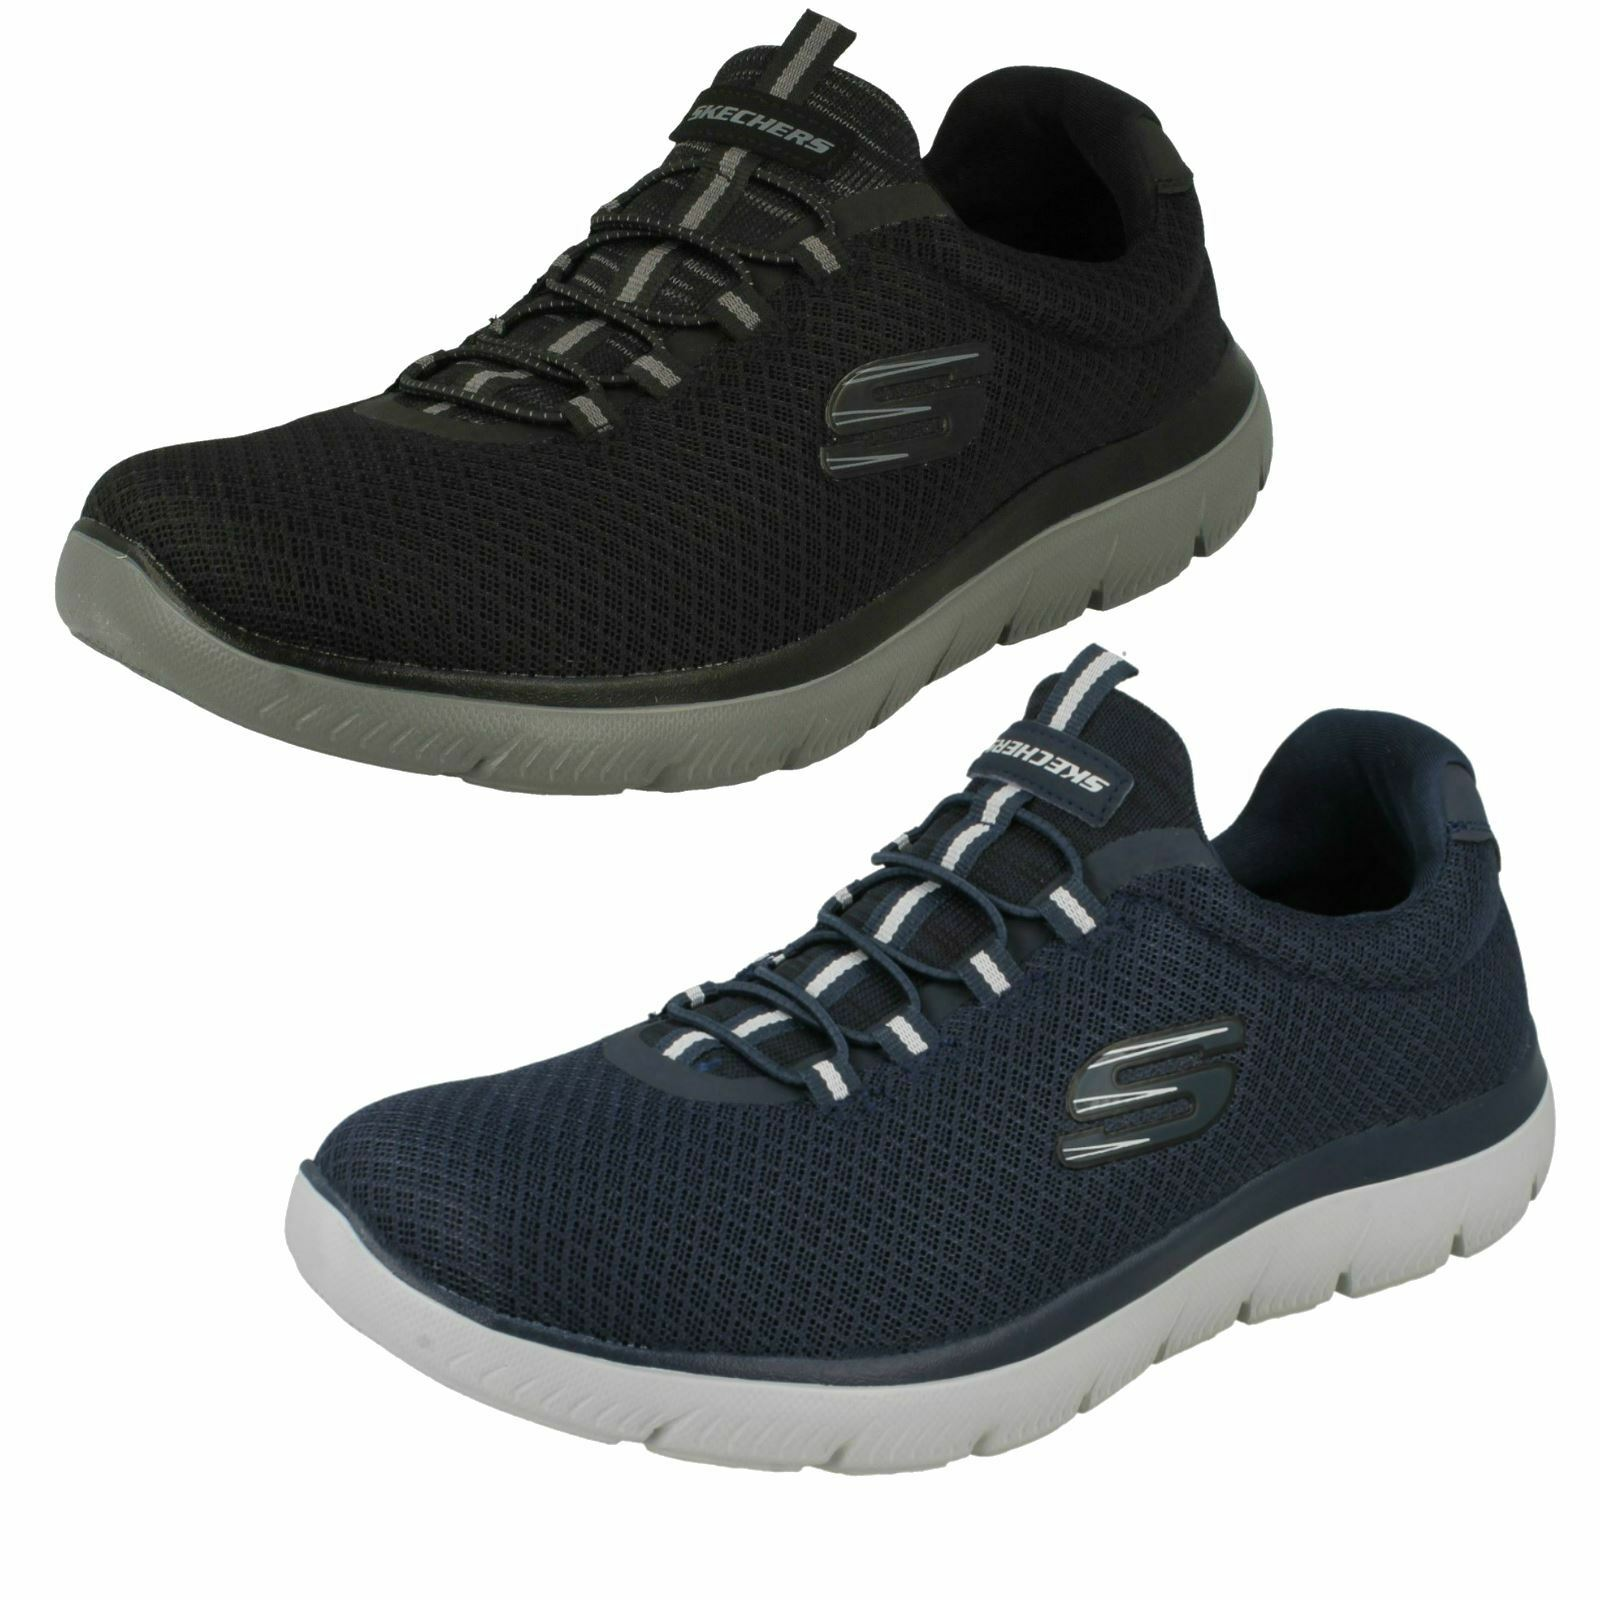 Mens Skechers Casual Trainers - Summits 52811